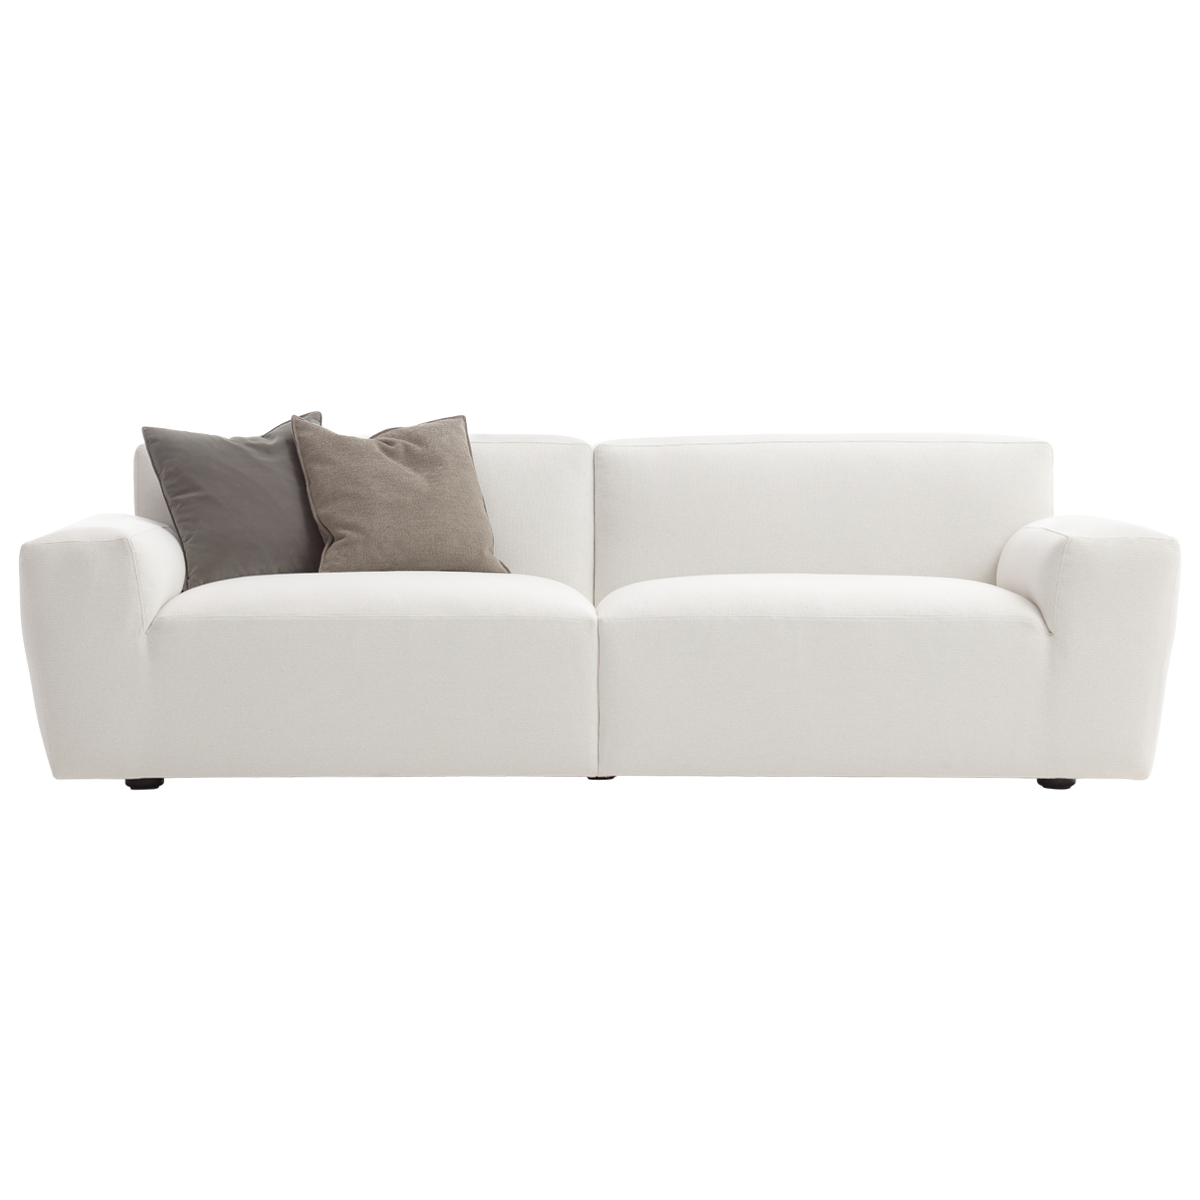 Pleasing Bisentina Sofa Winter White Sofa Minimalist Decor Gmtry Best Dining Table And Chair Ideas Images Gmtryco